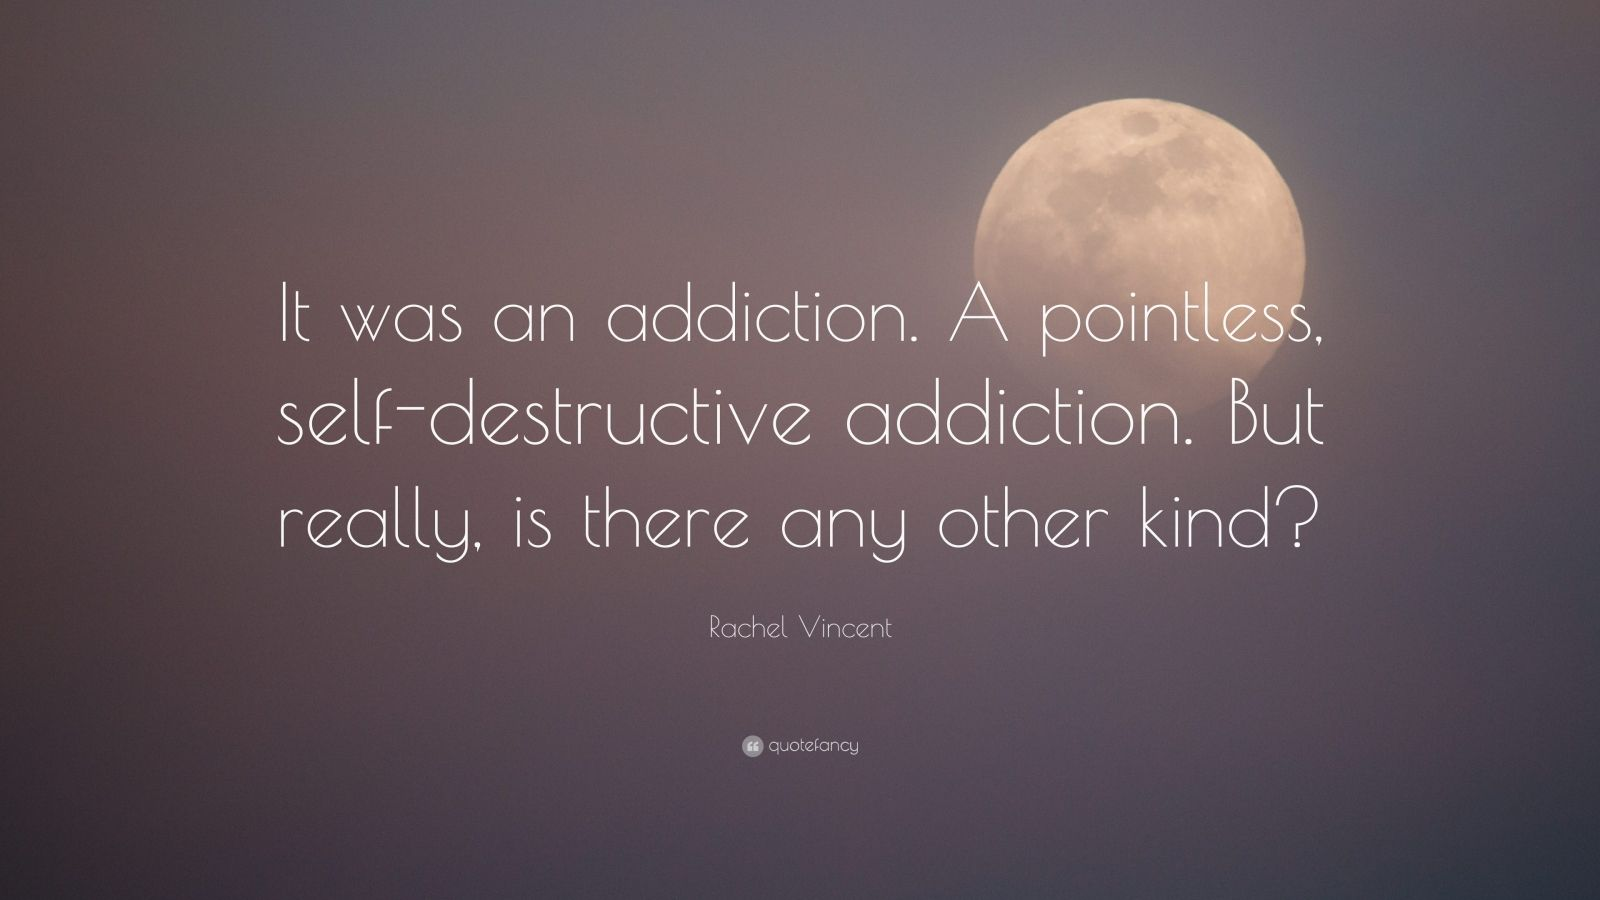 """Rachel Vincent Quote: """"It was an addiction. A pointless, self-destructive addiction. But really, is there any other kind?"""""""